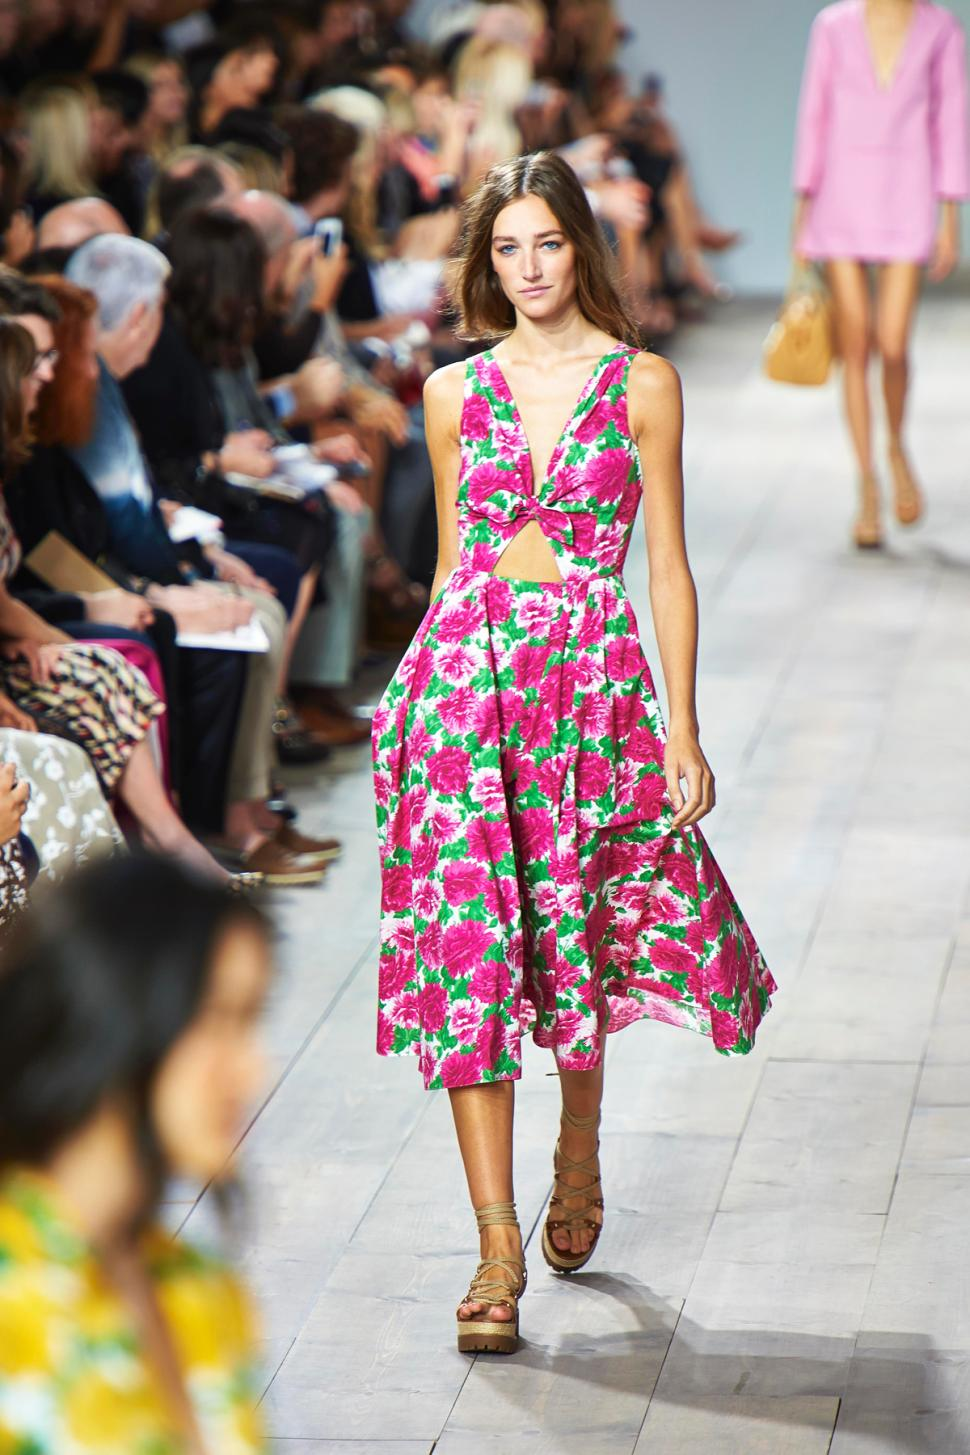 Michael   Kors     This dress is the definition of Spring with its flowery and colorful print. I could see this easily translating from day to night with the right accessories while on a vacation.